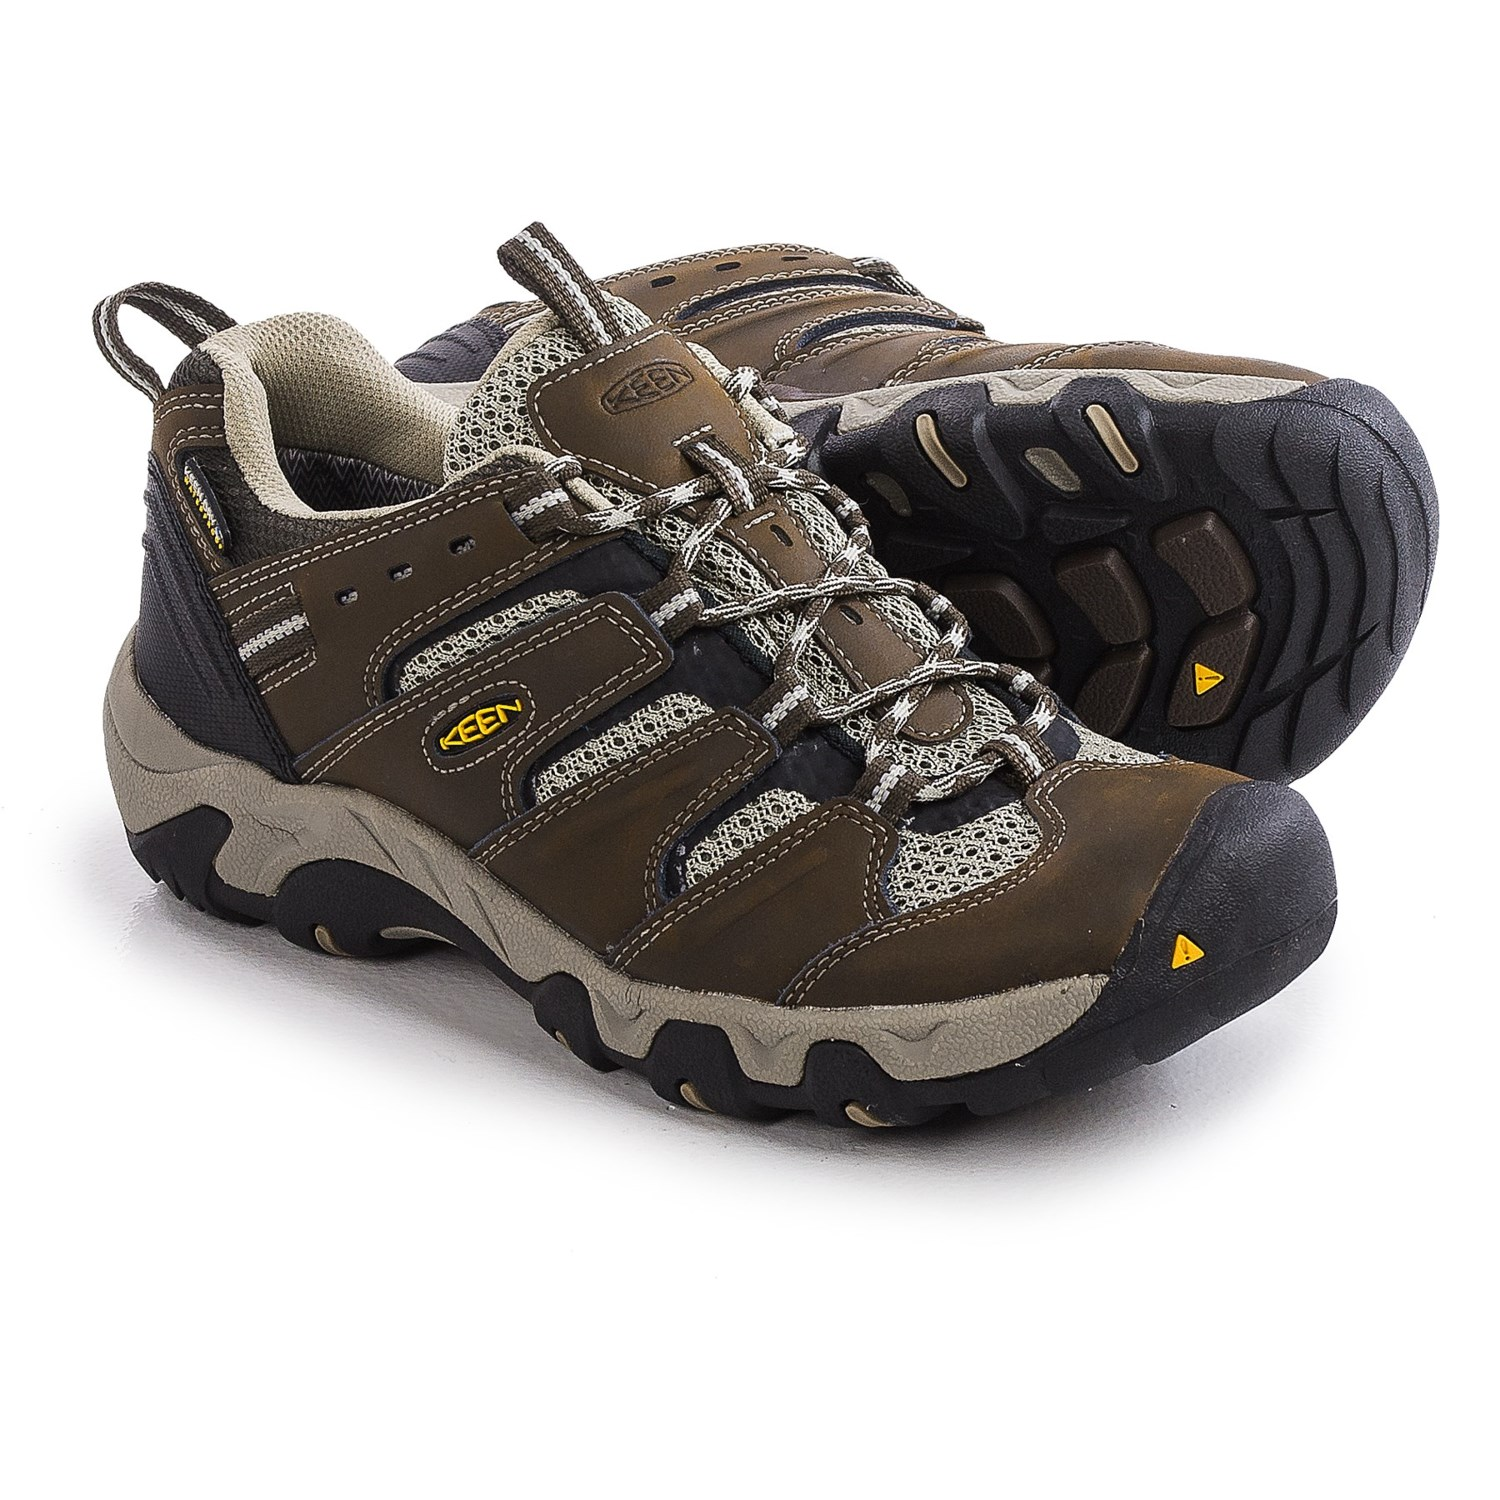 Keen Shoes Online Store